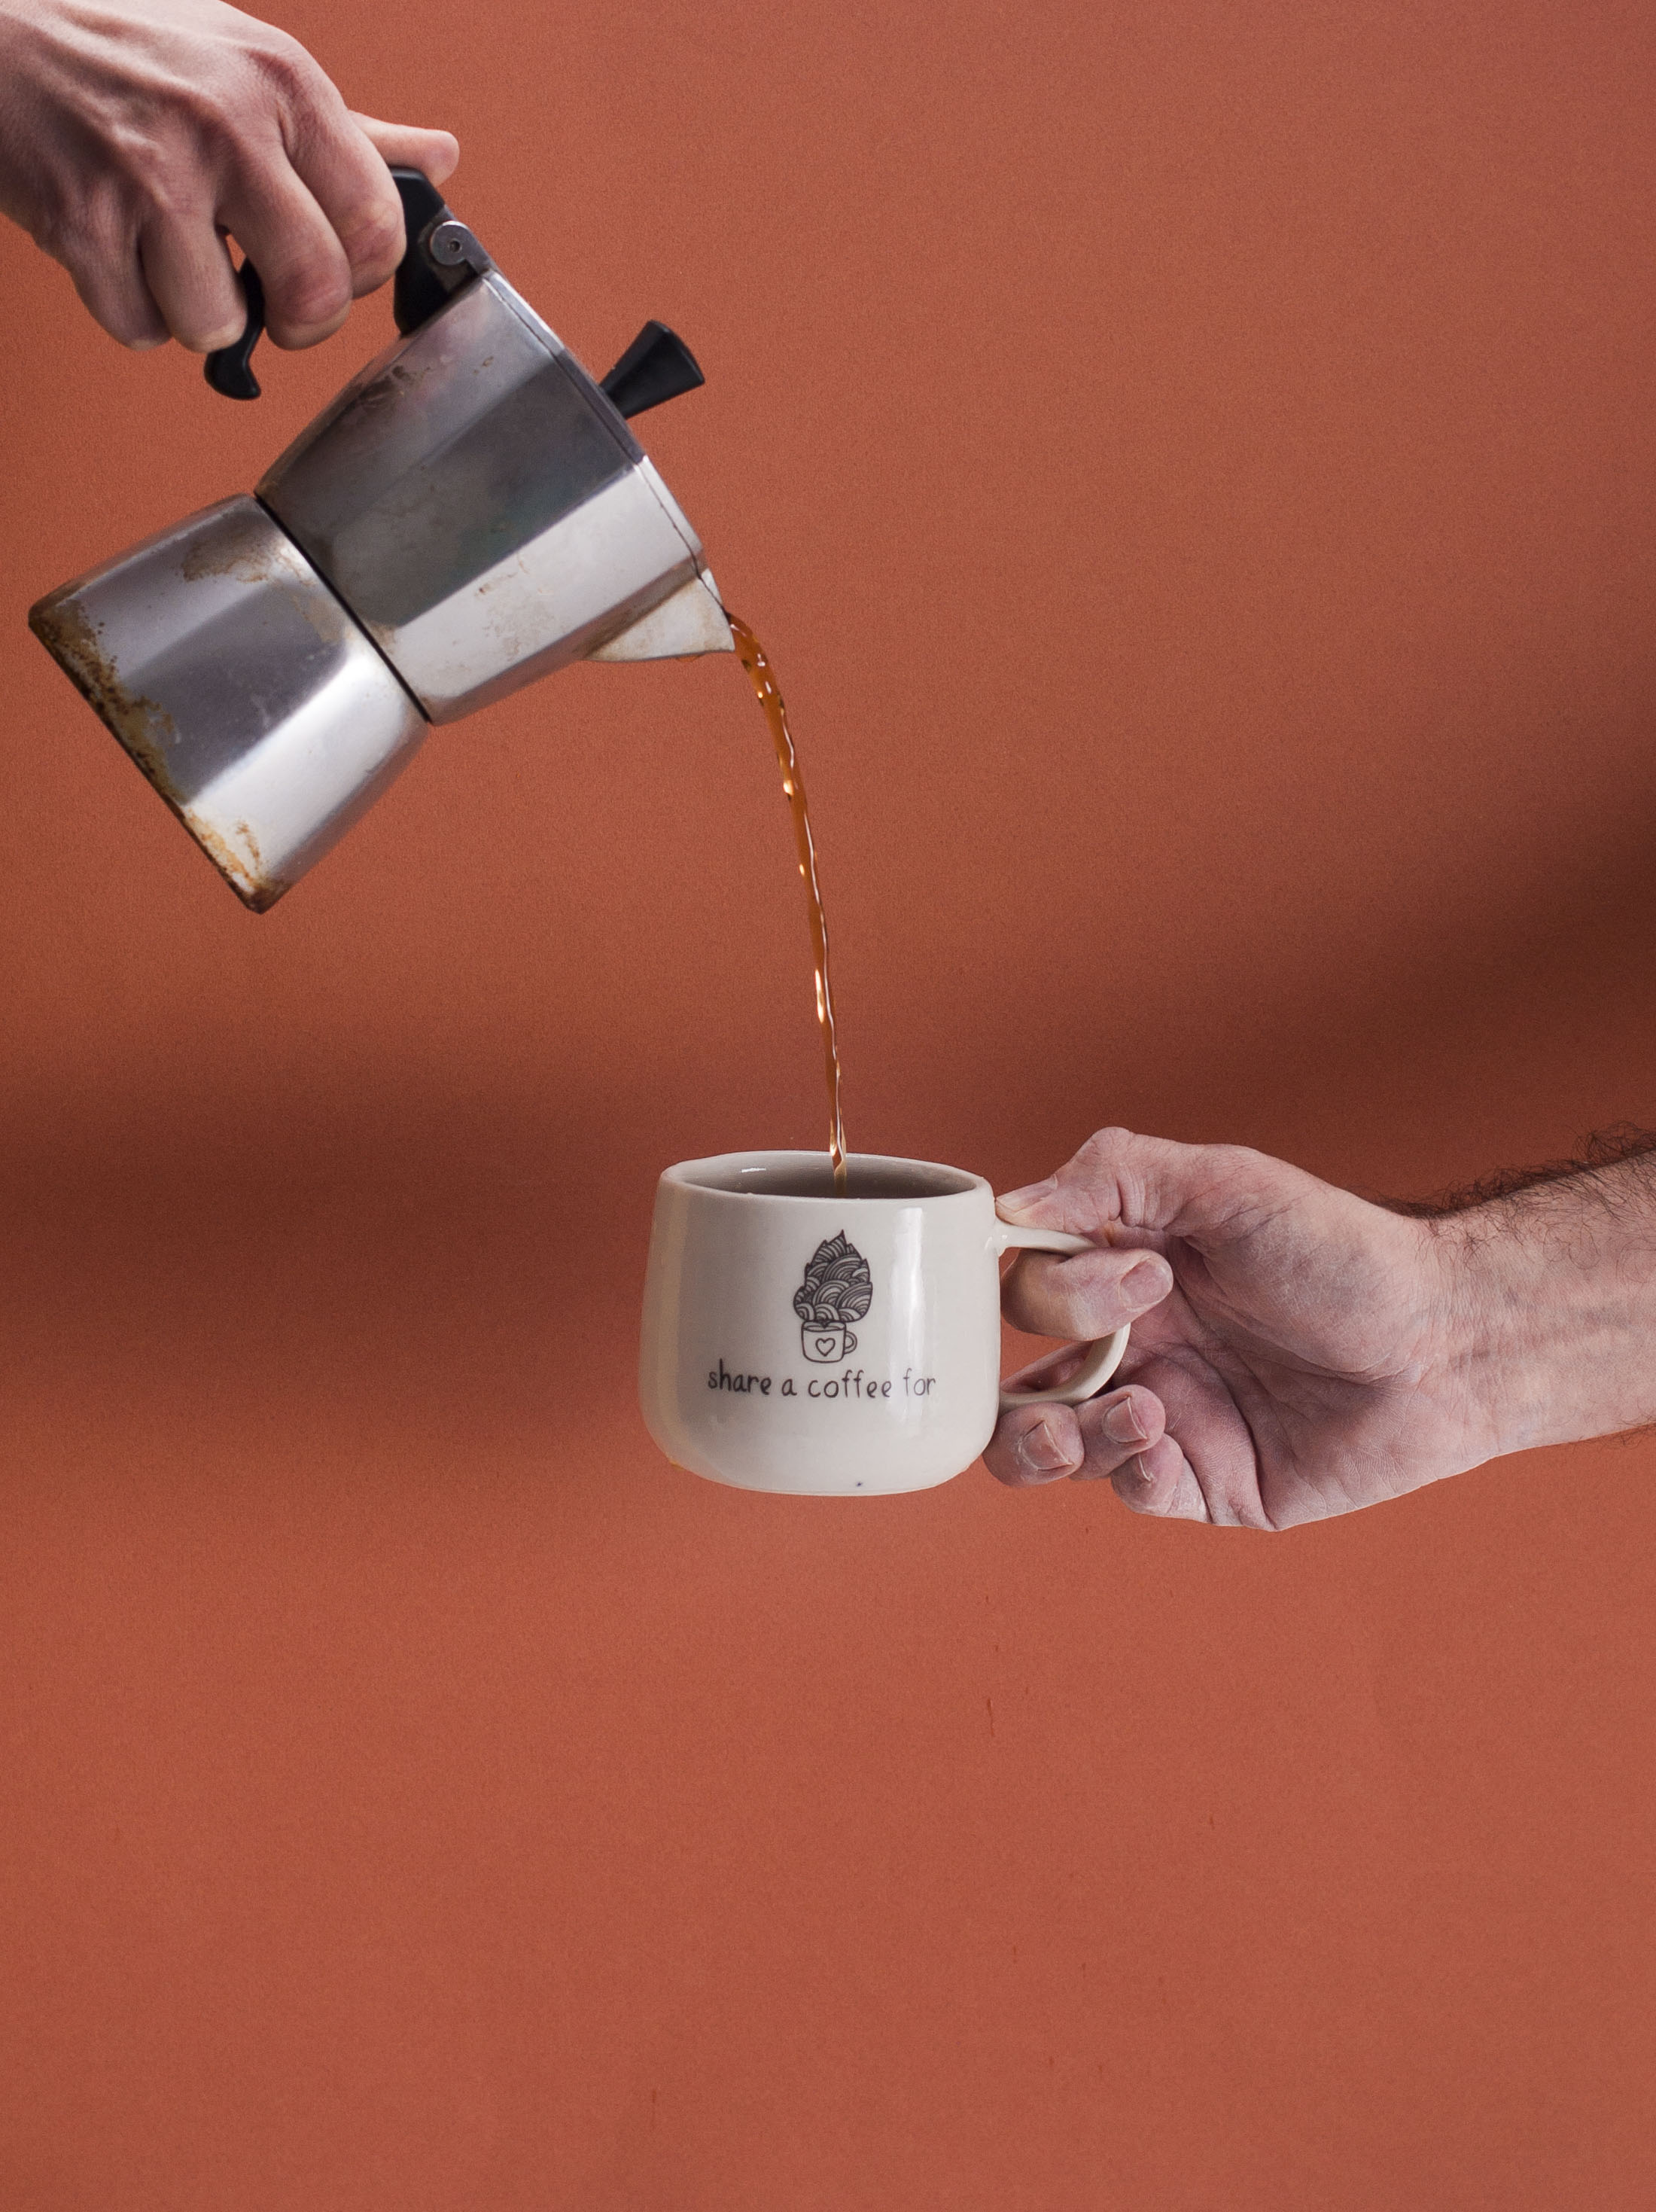 share a coffee for-1.jpg